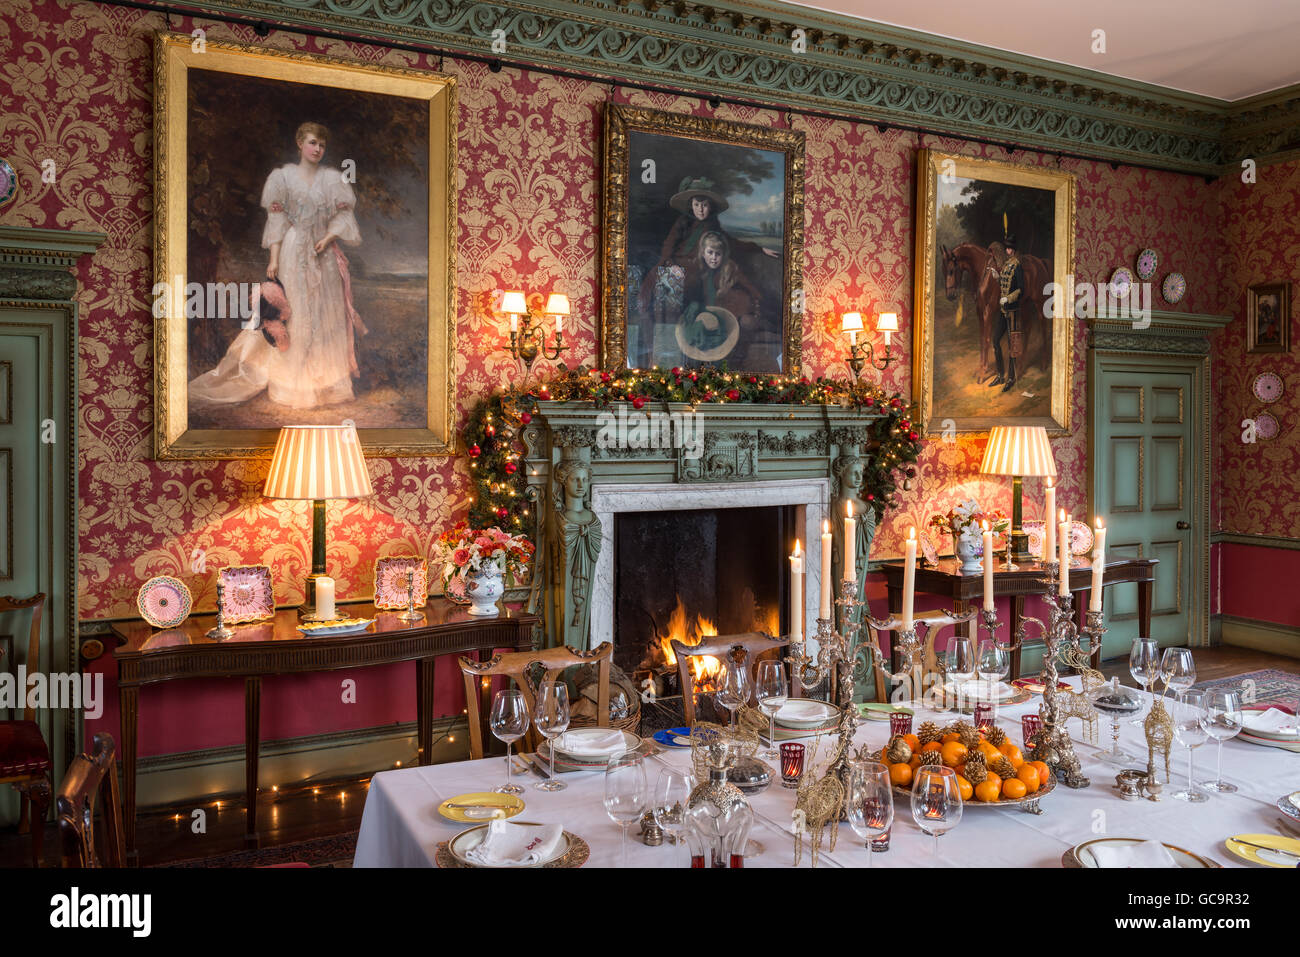 Etonnant Grade I Listed Victorian Gothic Dining Room Set For Christmas Dinner With  Blazing Fire, Carlton Towers, East Riding